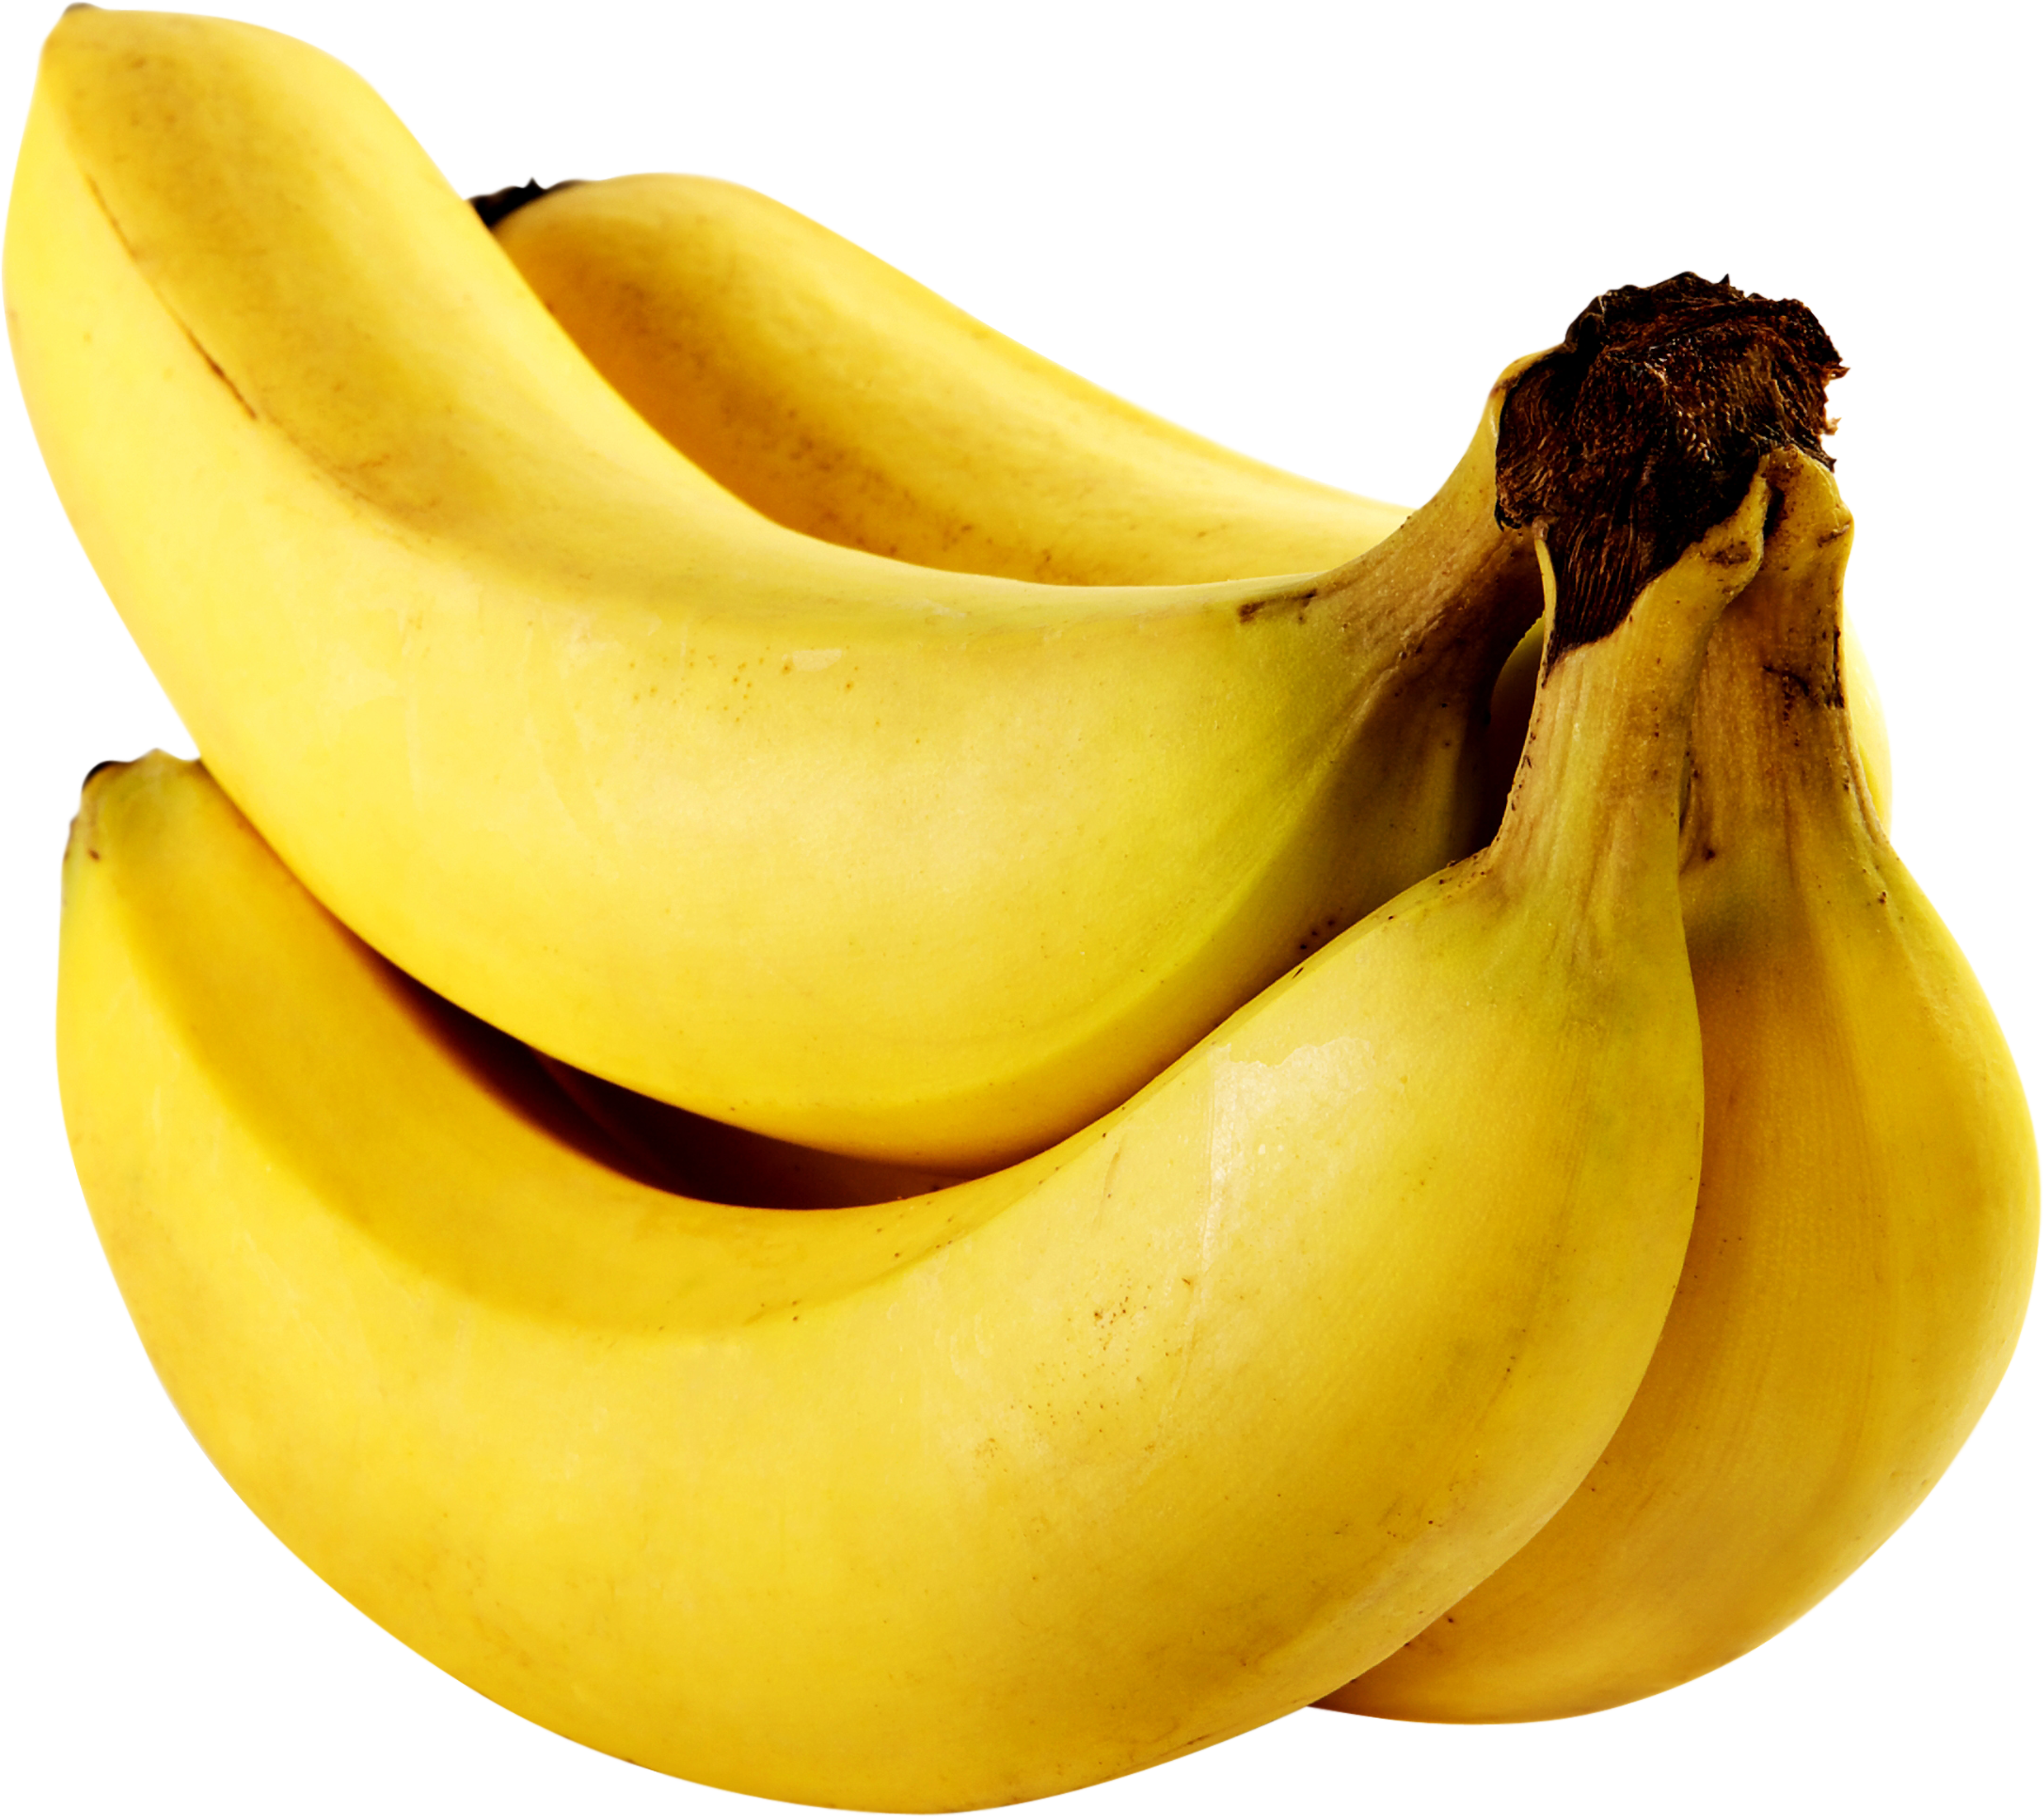 Transparent png hand of bananas. Banana image free picture